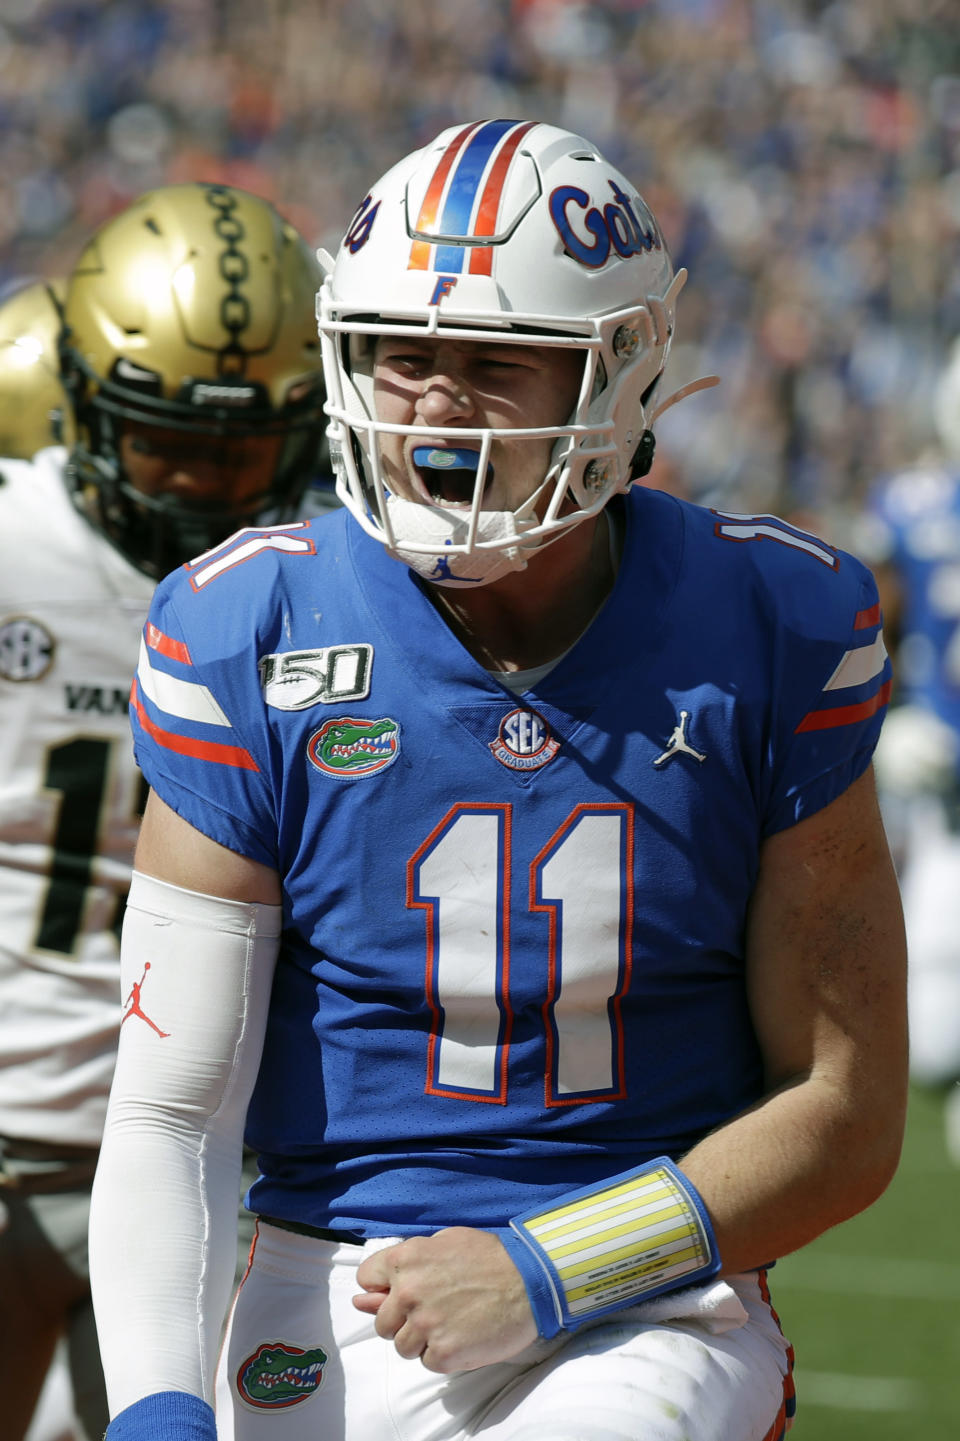 Florida quarterback Kyle Trask celebrates after scoring a touchdown on a 9-yard run against Vanderbilt during the first half of an NCAA college football game, Saturday, Nov. 9, 2019, in Gainesville, Fla. (AP Photo/John Raoux)